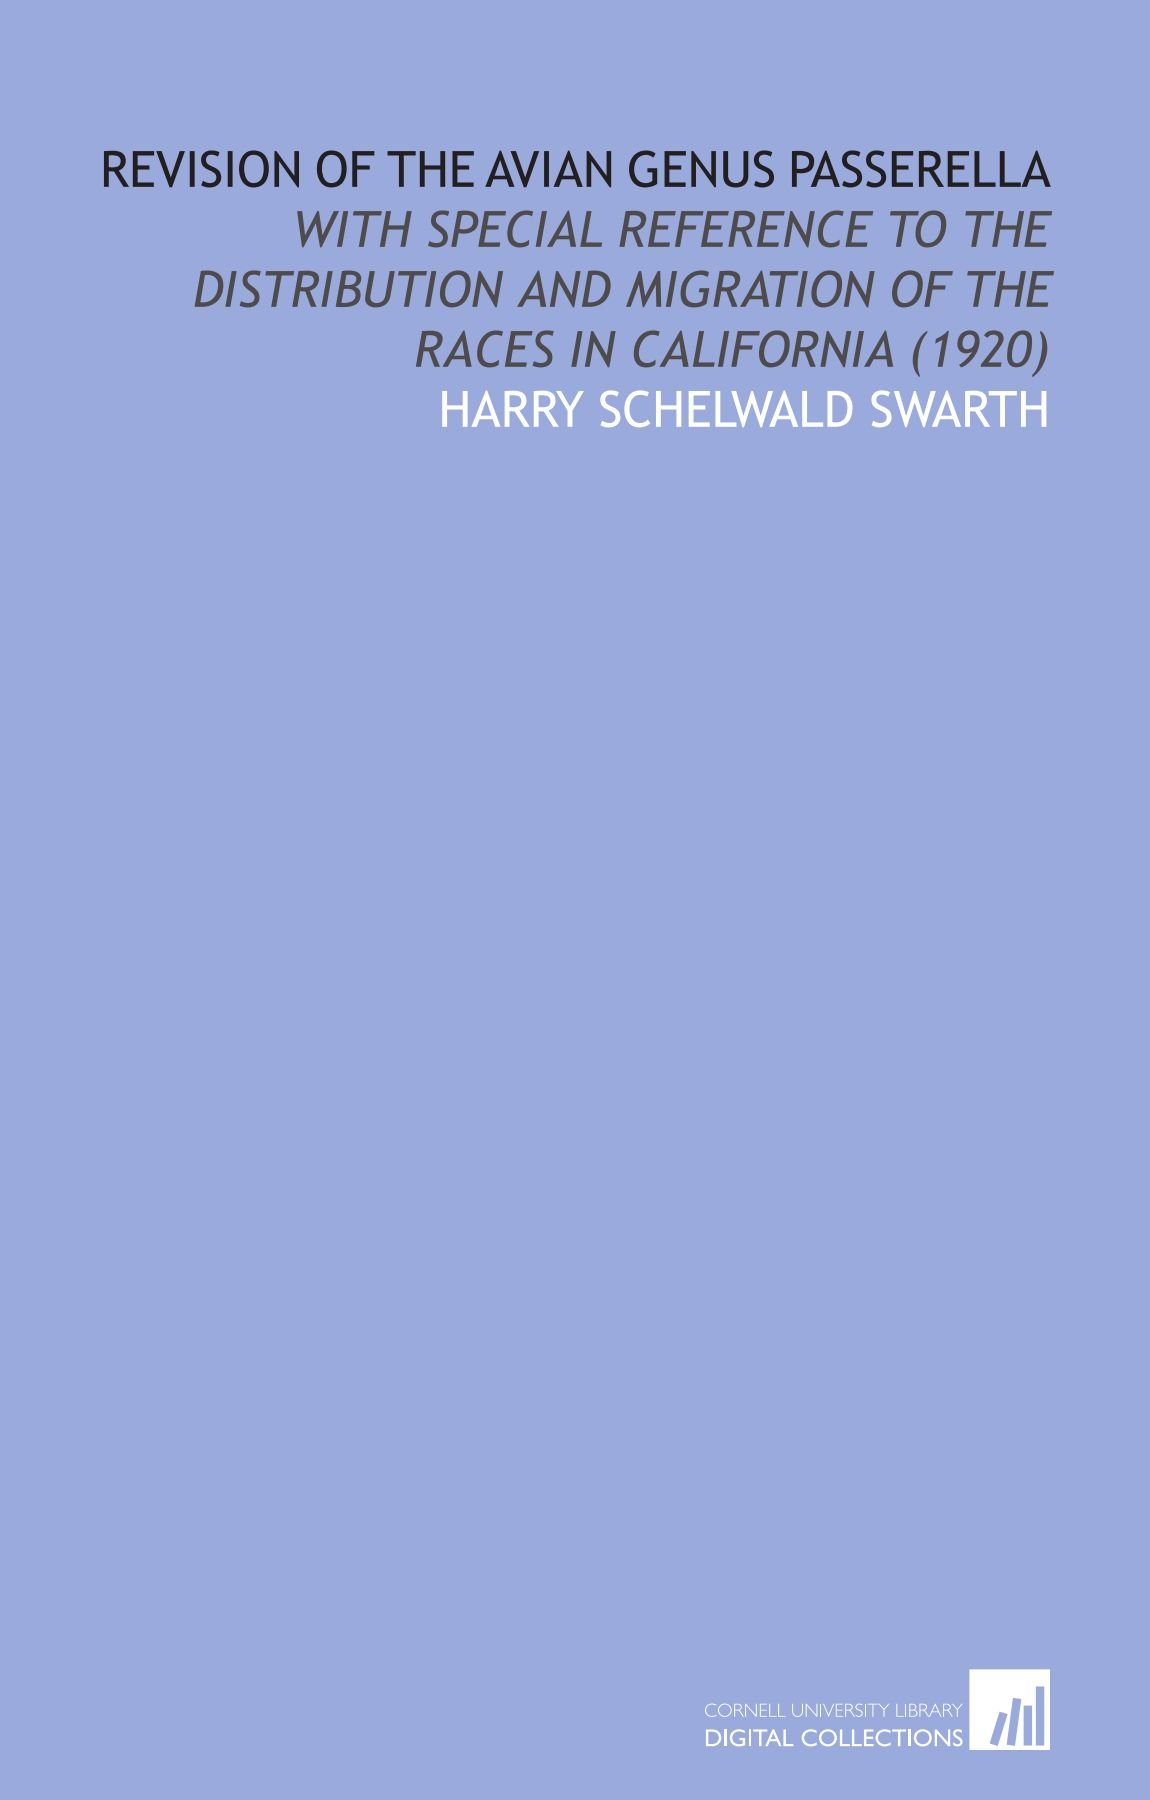 Revision of the Avian Genus Passerella: With Special Reference to the Distribution and Migration of the Races in California (1920) pdf